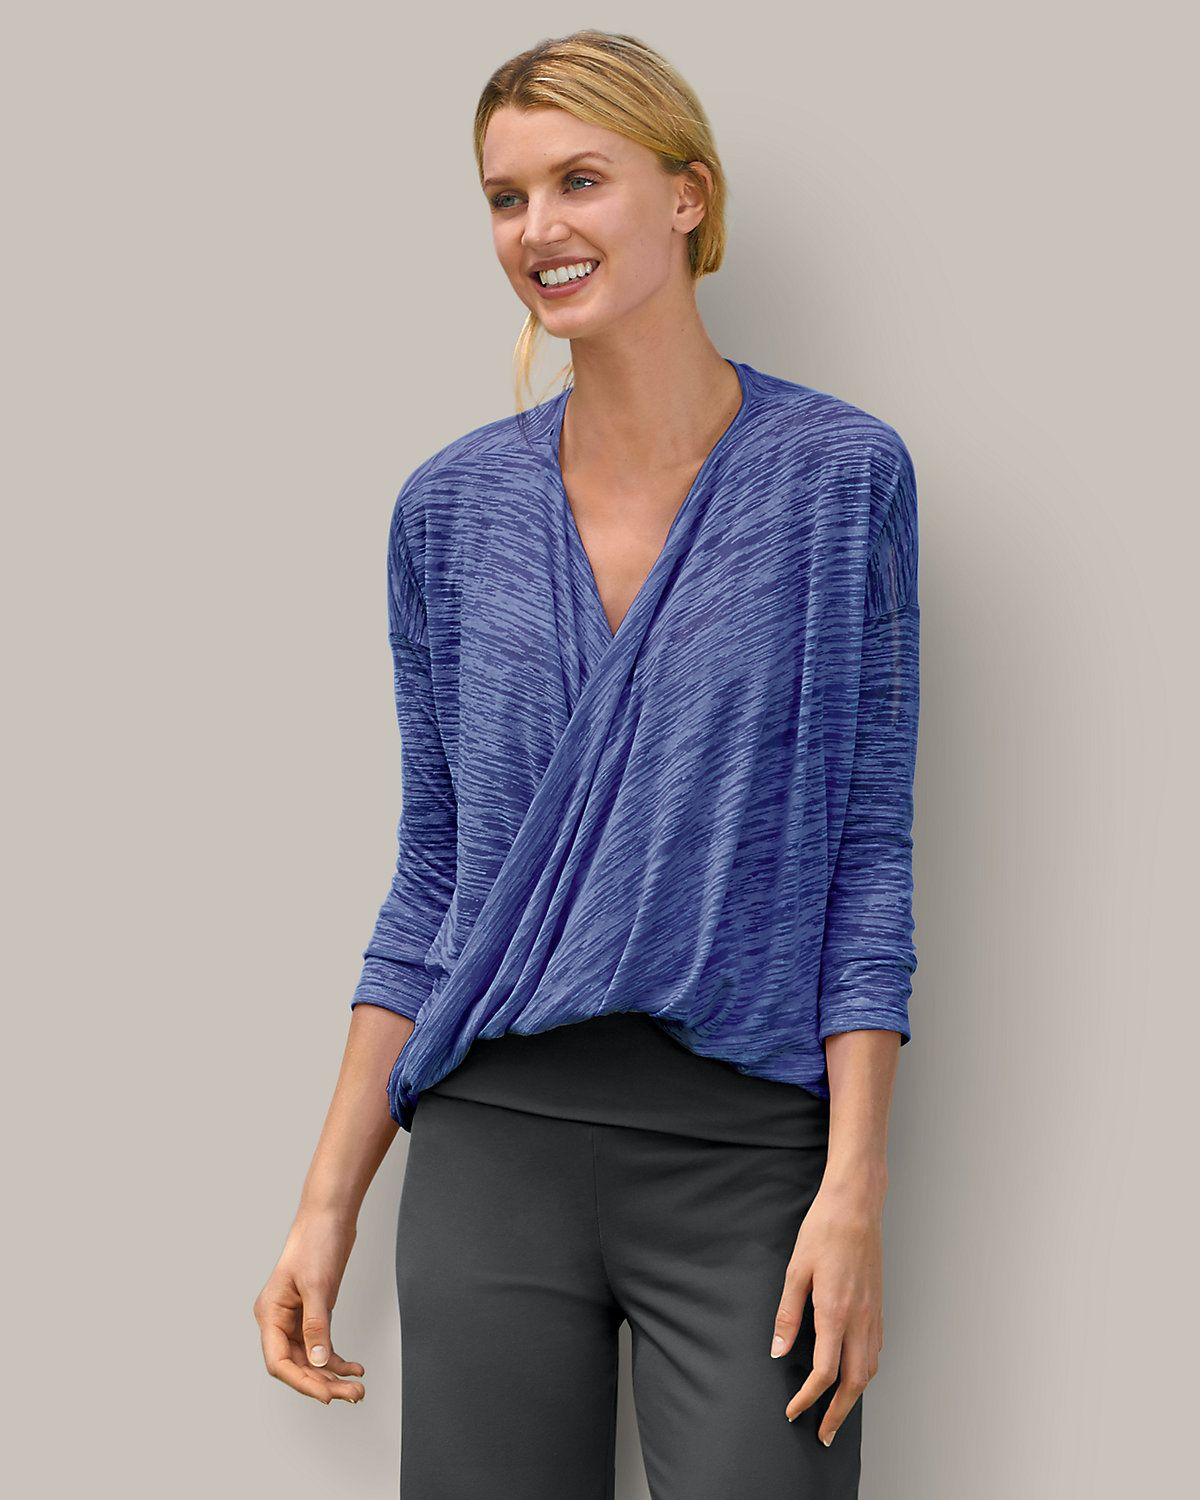 Women's 3/4-sleeve Burnout Wrap Top | Eddie Bauer got this for ...